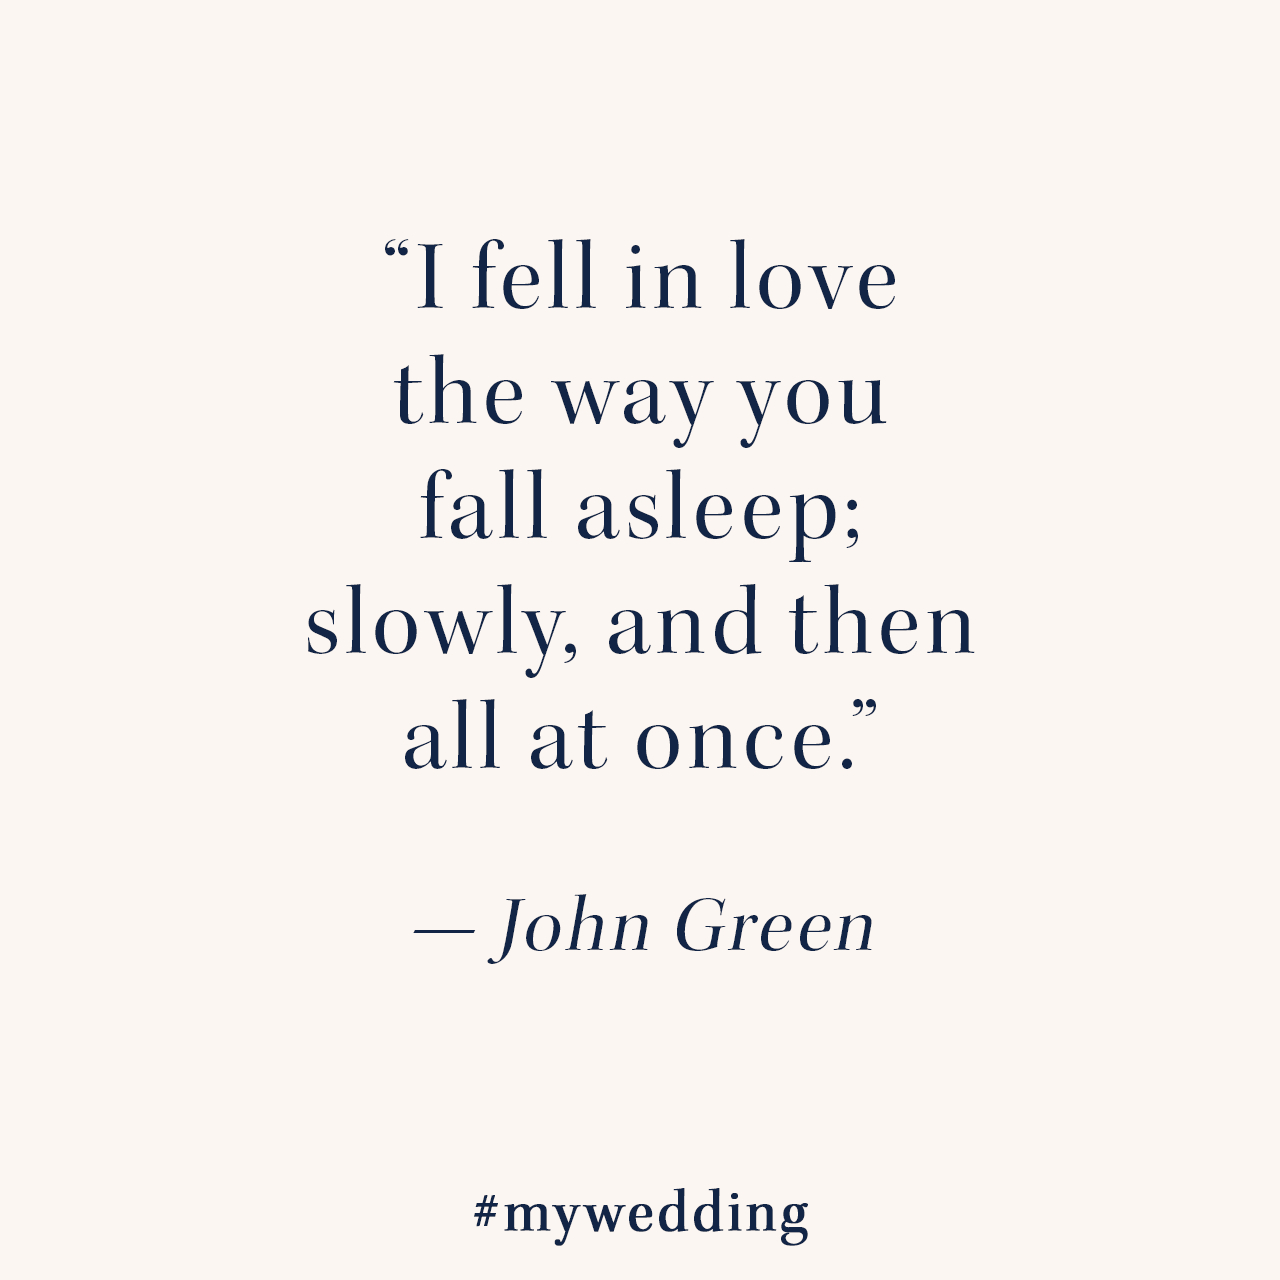 John Green Quotes About Love I Fell In Love The Way You Fall Asleep Slowly